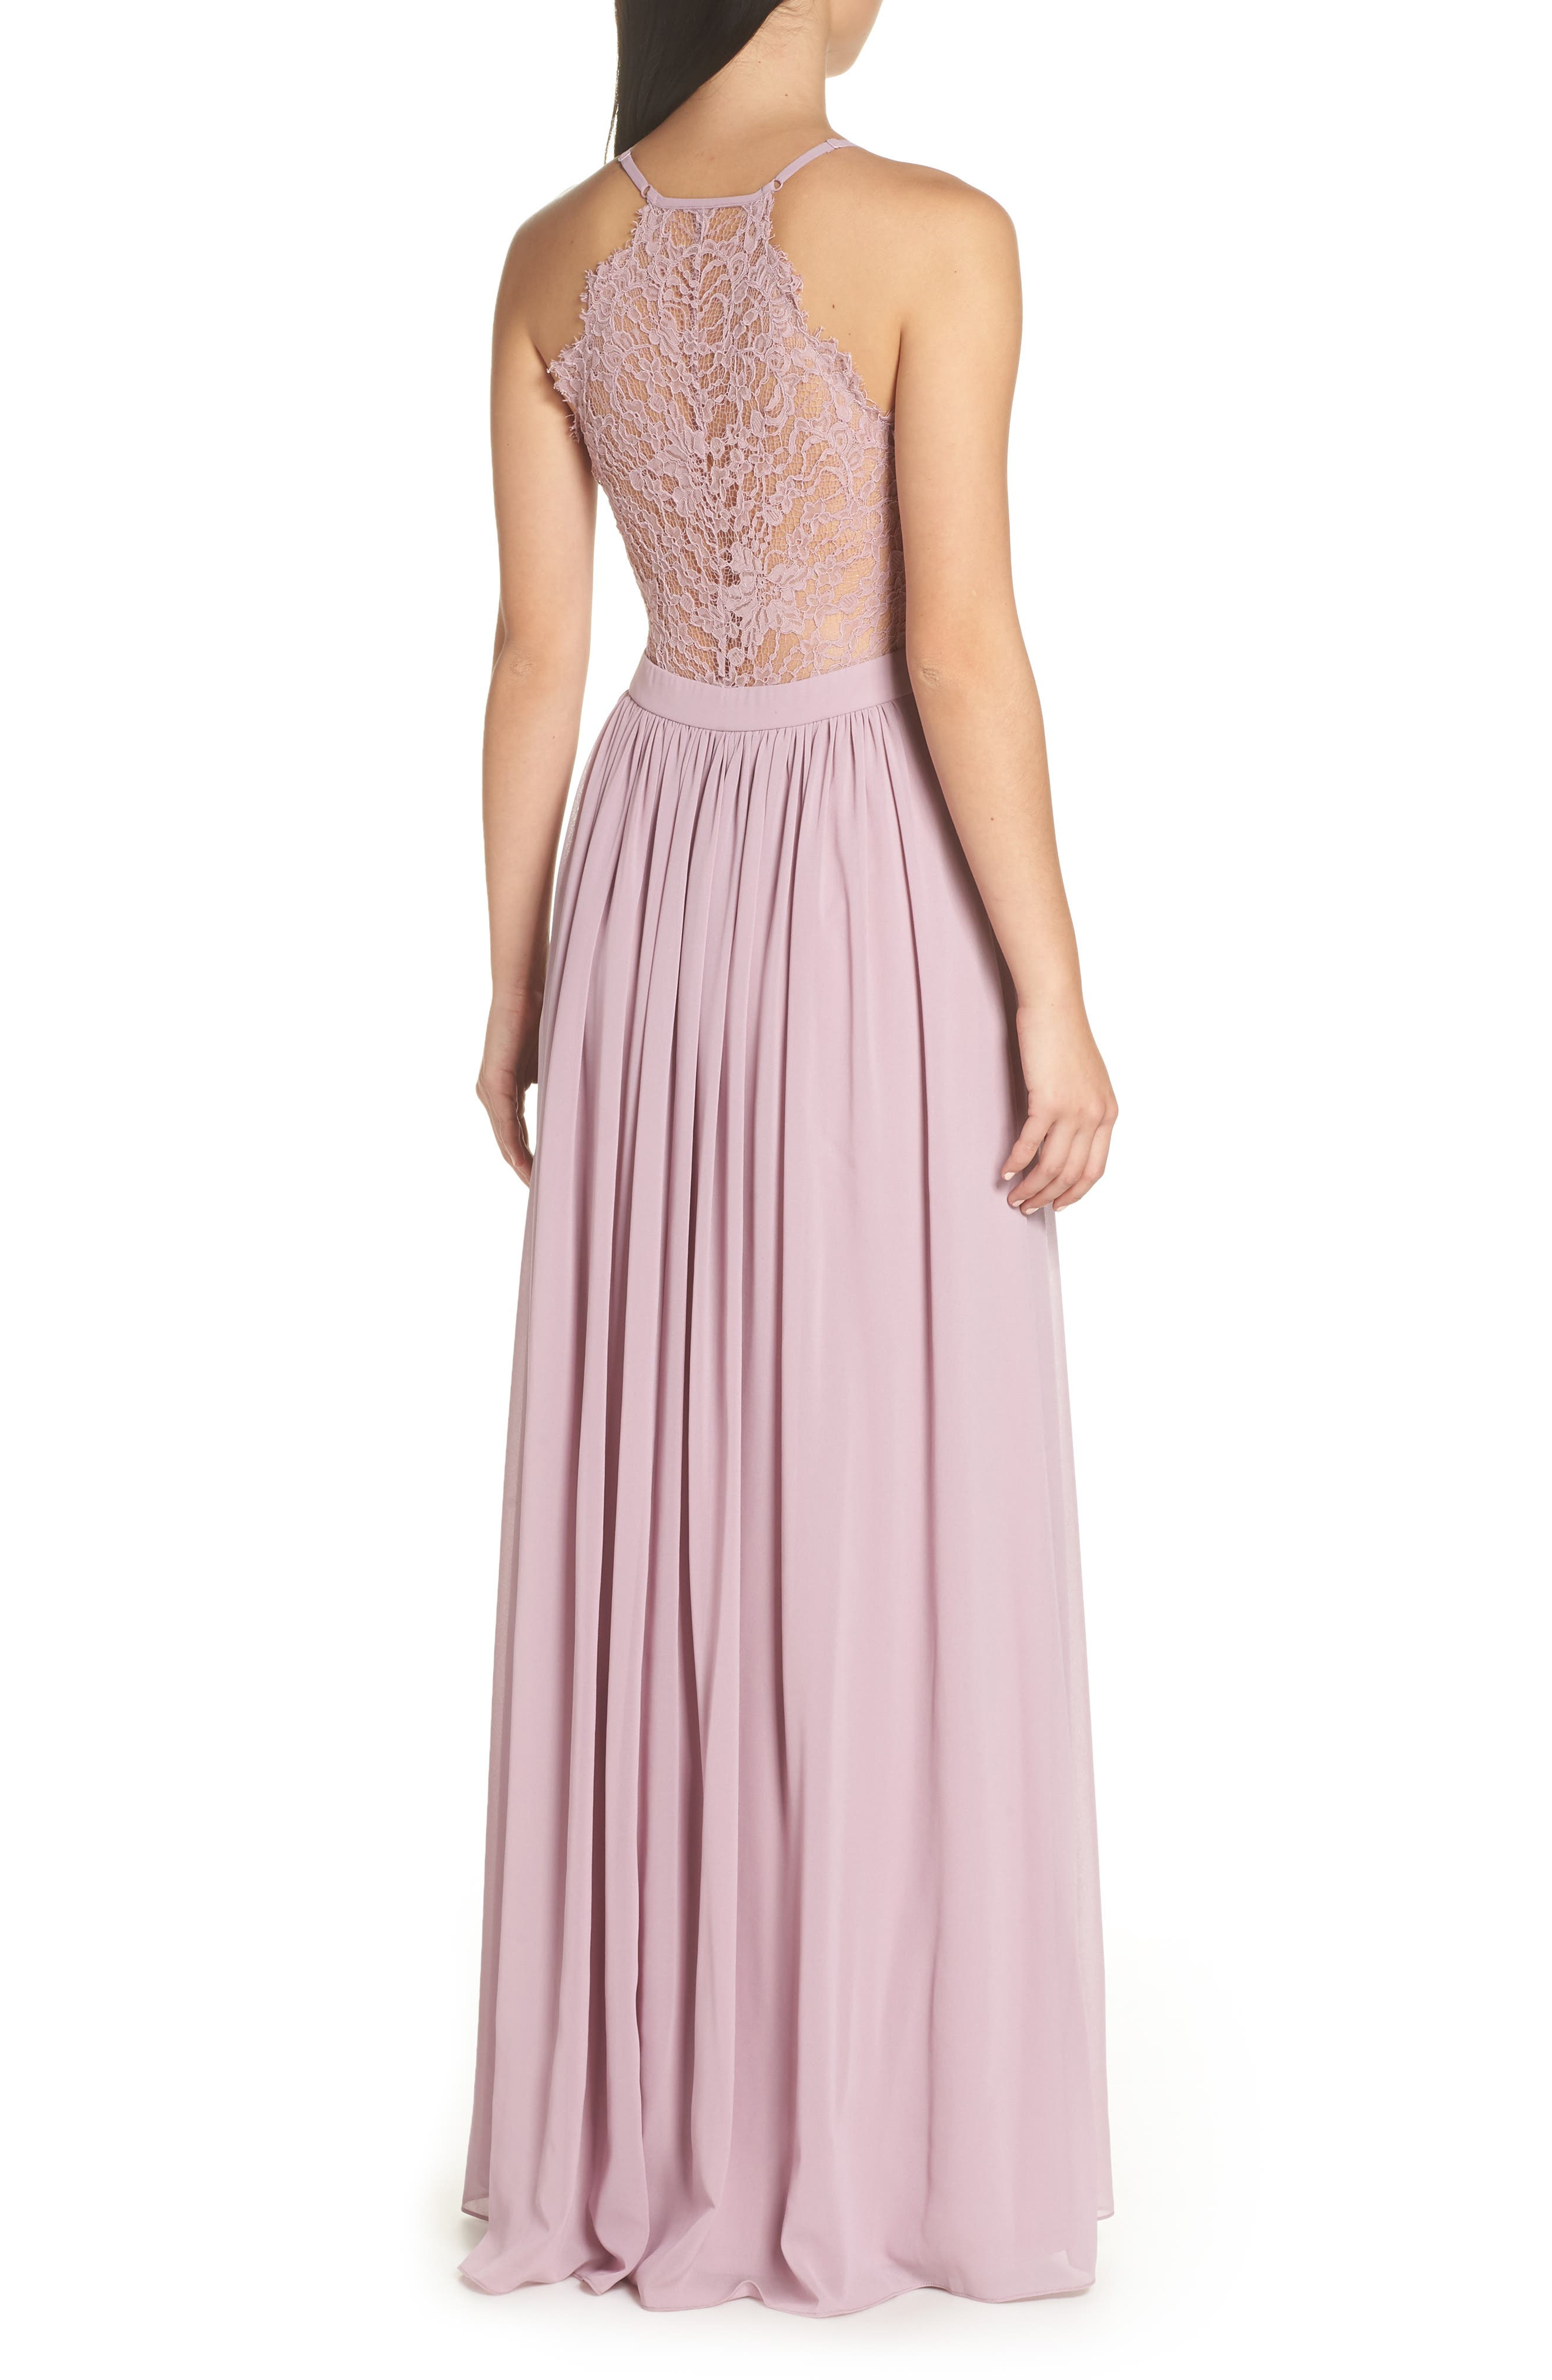 LULUS, Everlasting Beauty Lace Back Chiffon Gown, Alternate thumbnail 2, color, LAVENDER